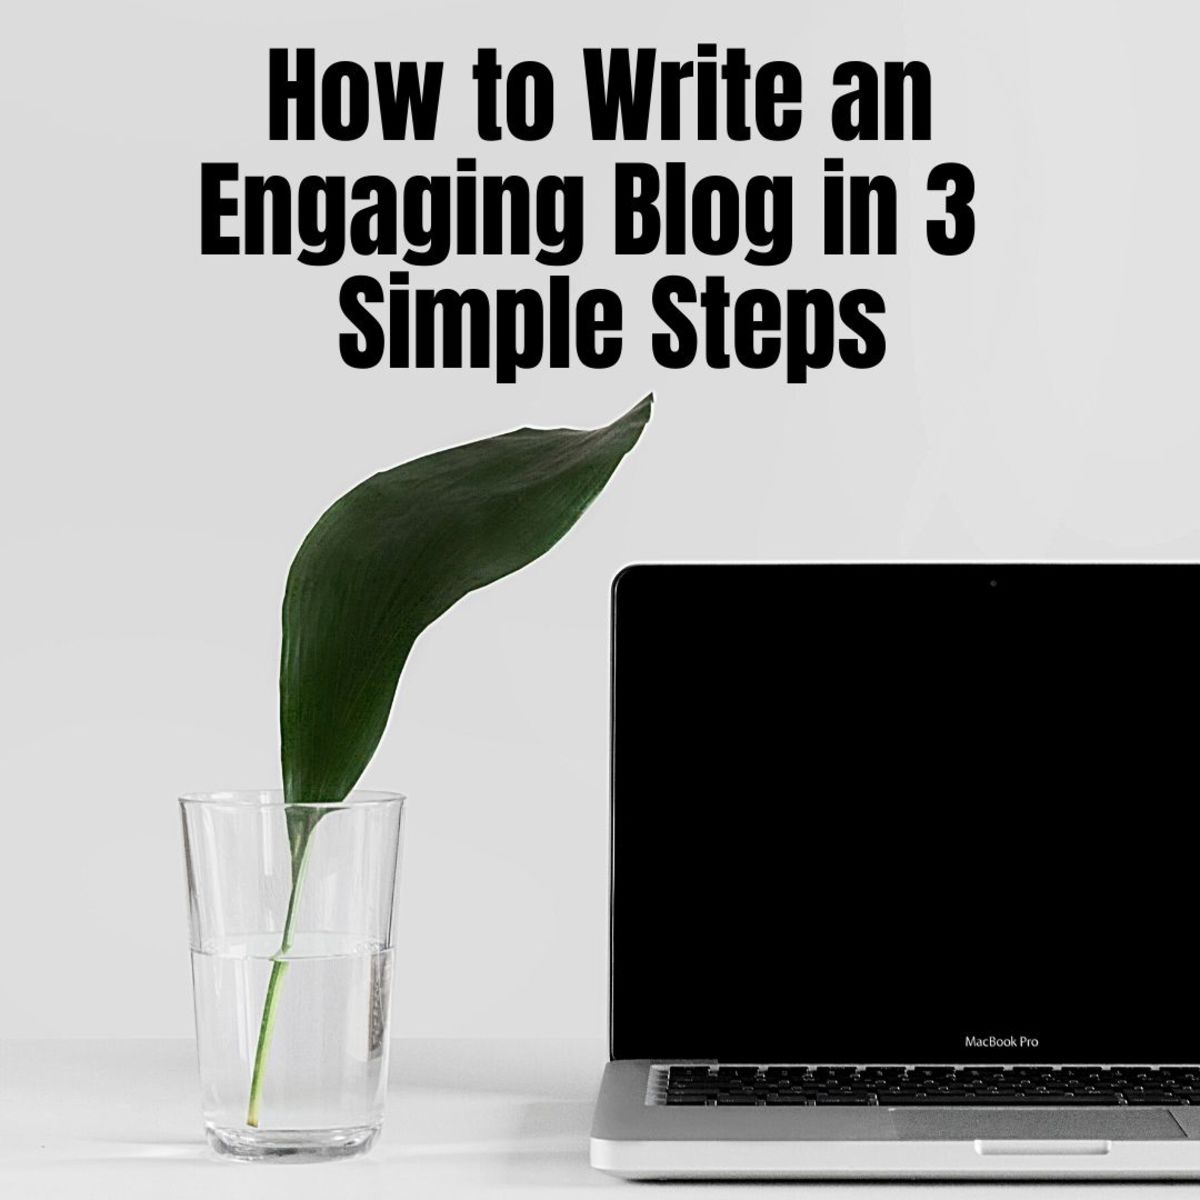 How to Write Engaging Blog Content in 3 Simple Steps